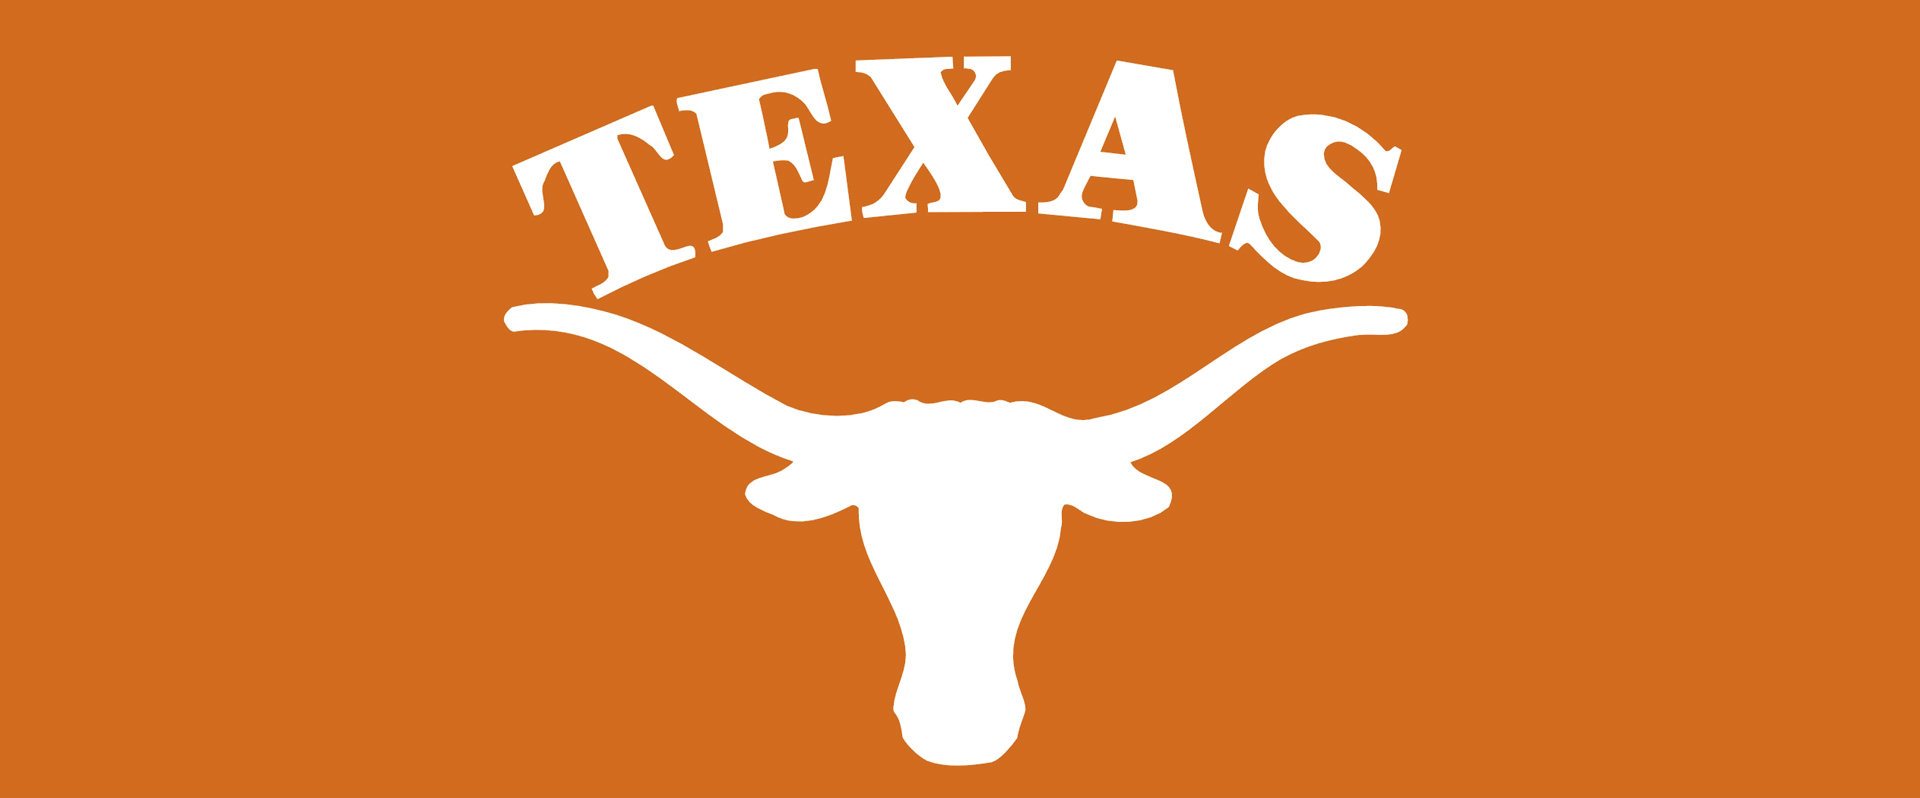 university of texas custom social api integration